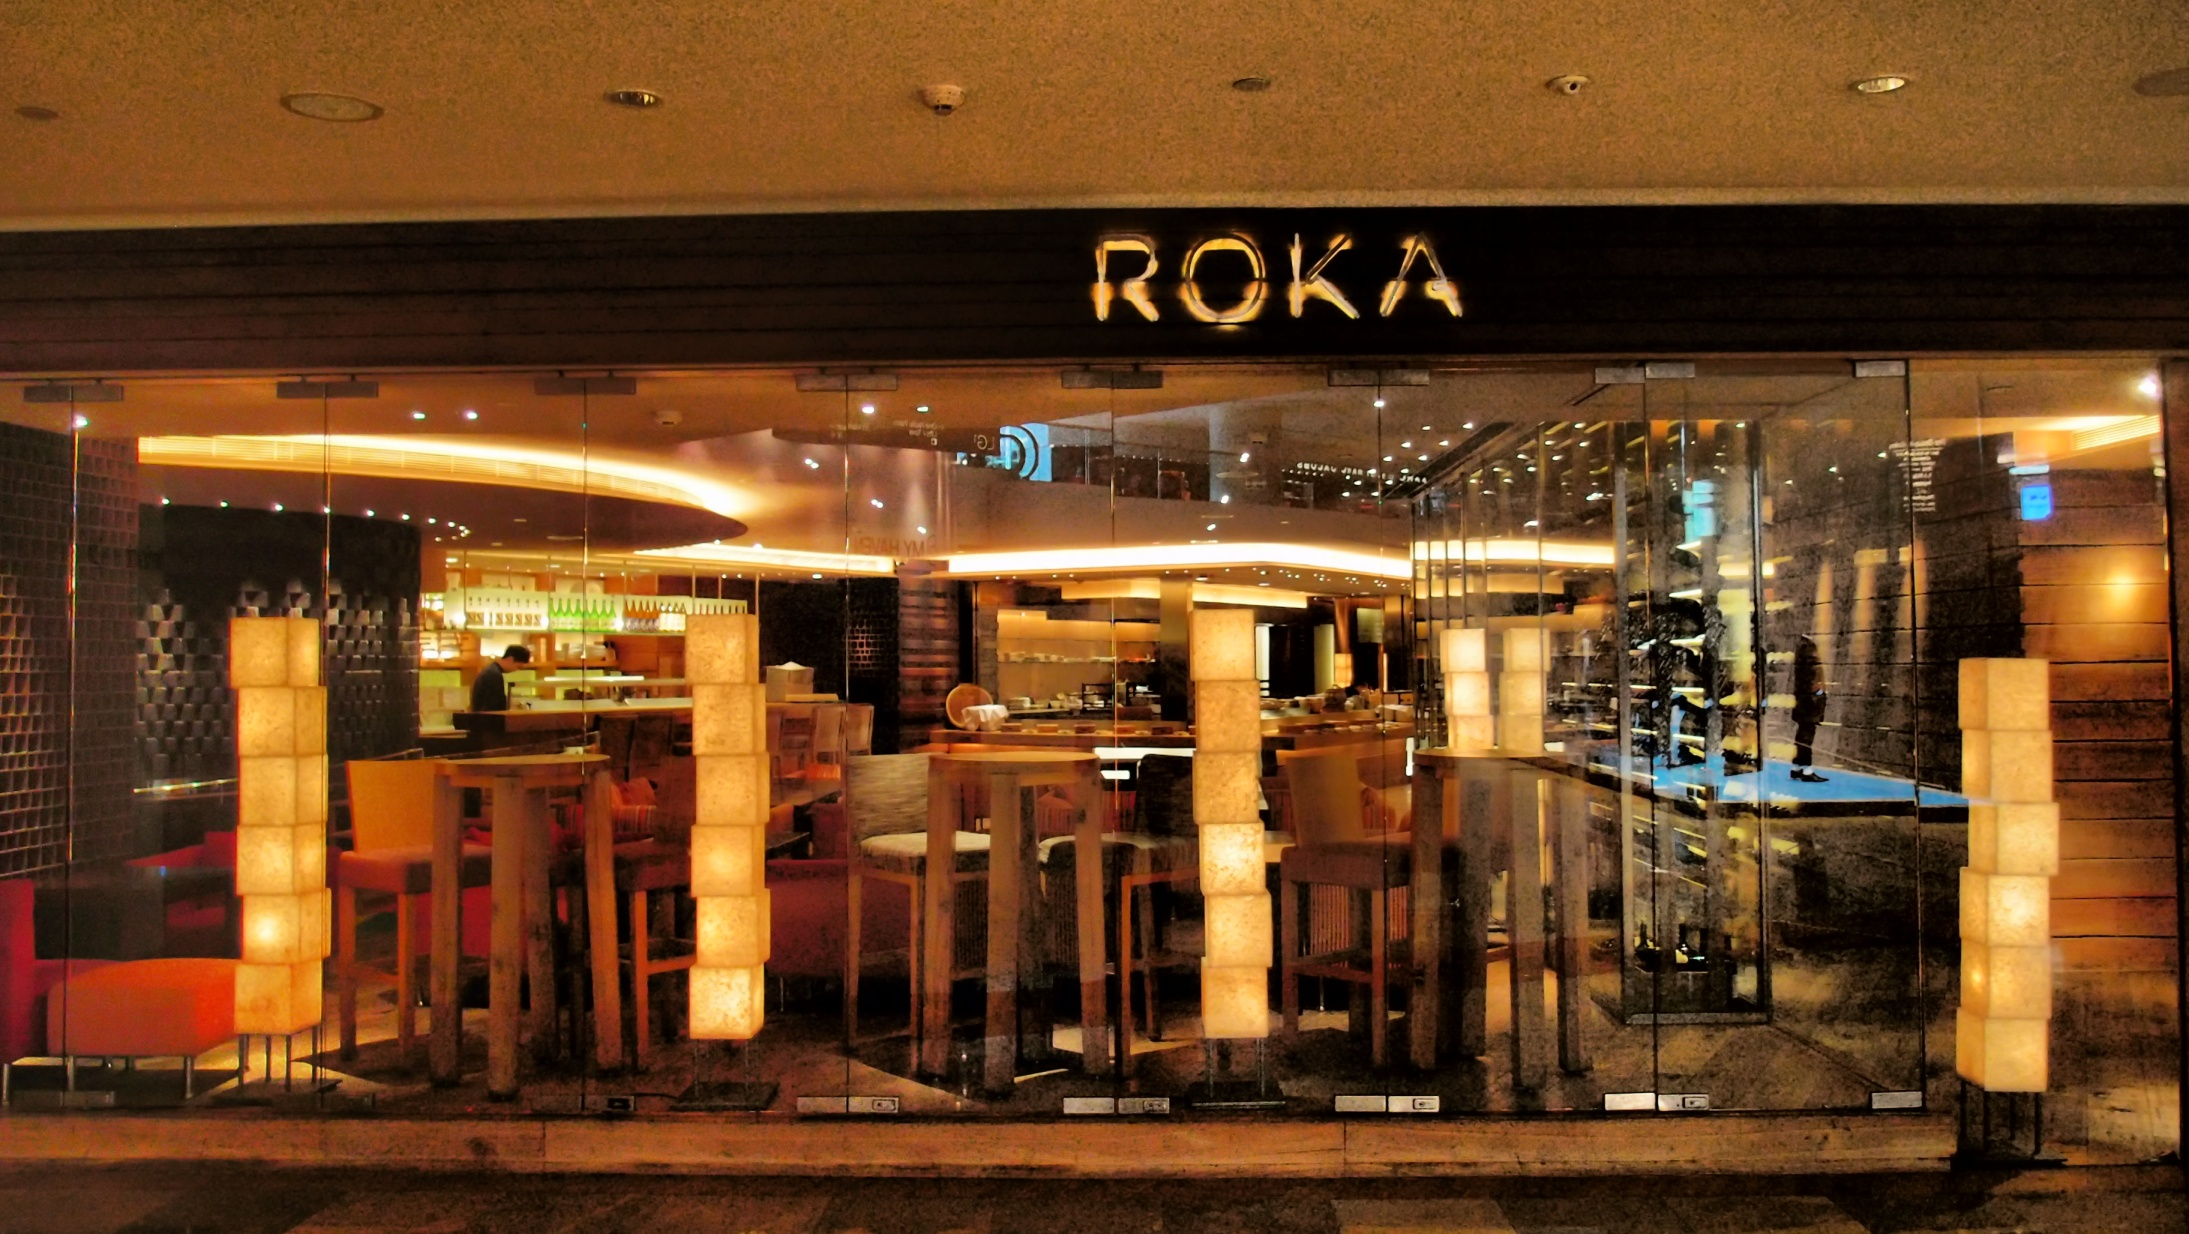 Roka, a restaurant in Pacific Place does amazingly well as it is right next to the entrance to the J.W. Marriott Hotel and is an easy choice for Hotel Guests.